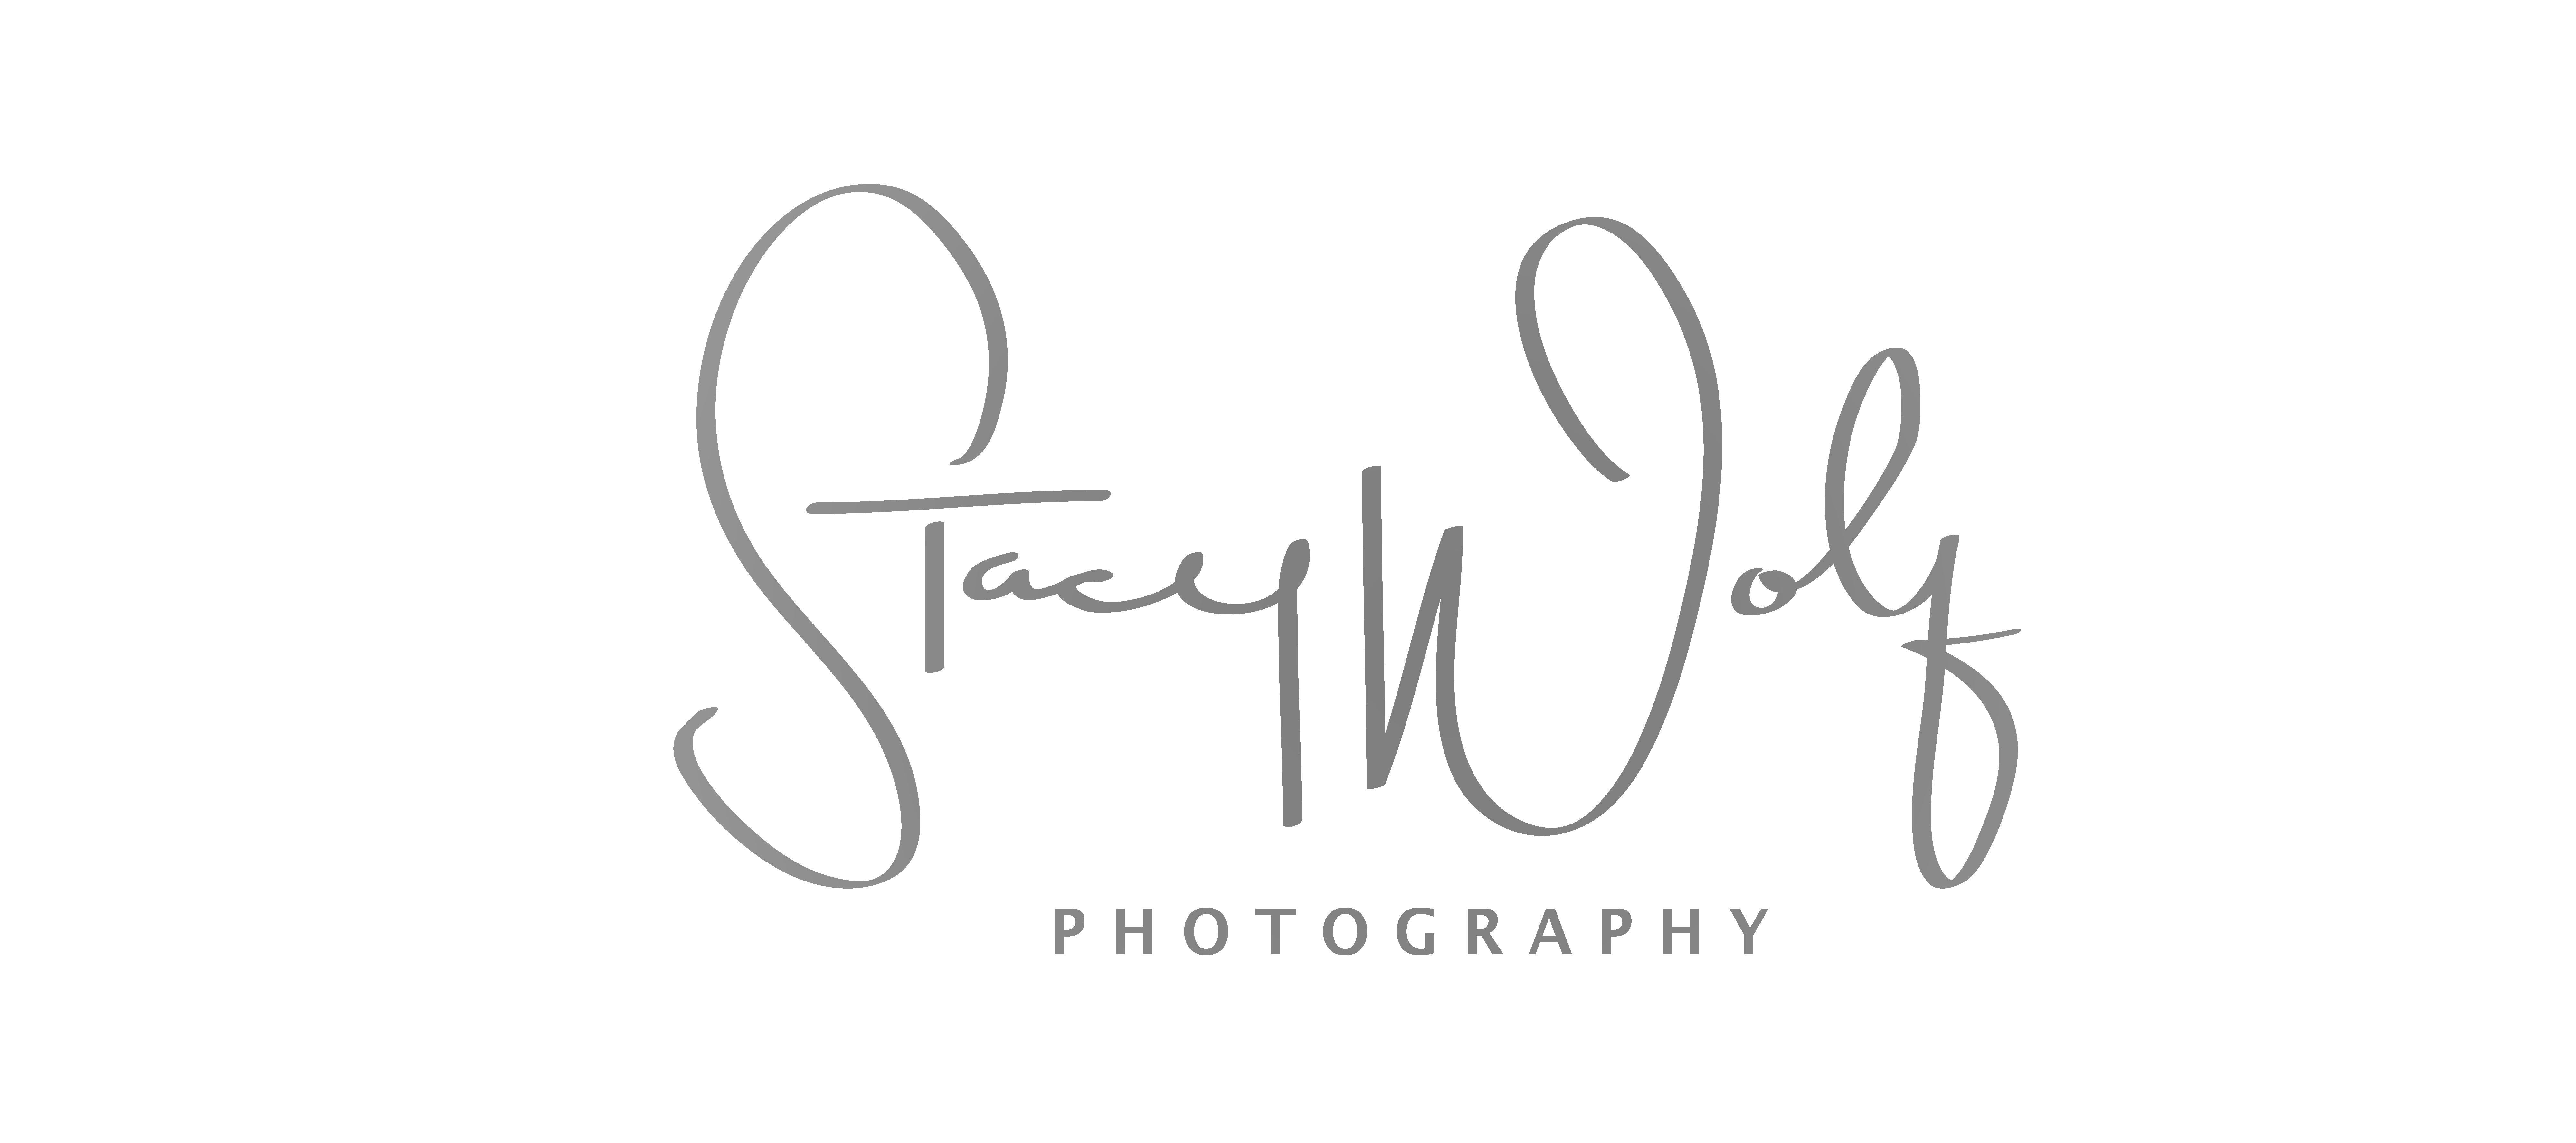 Stacy Wolf Photography Indianapolis Portrait Photographer